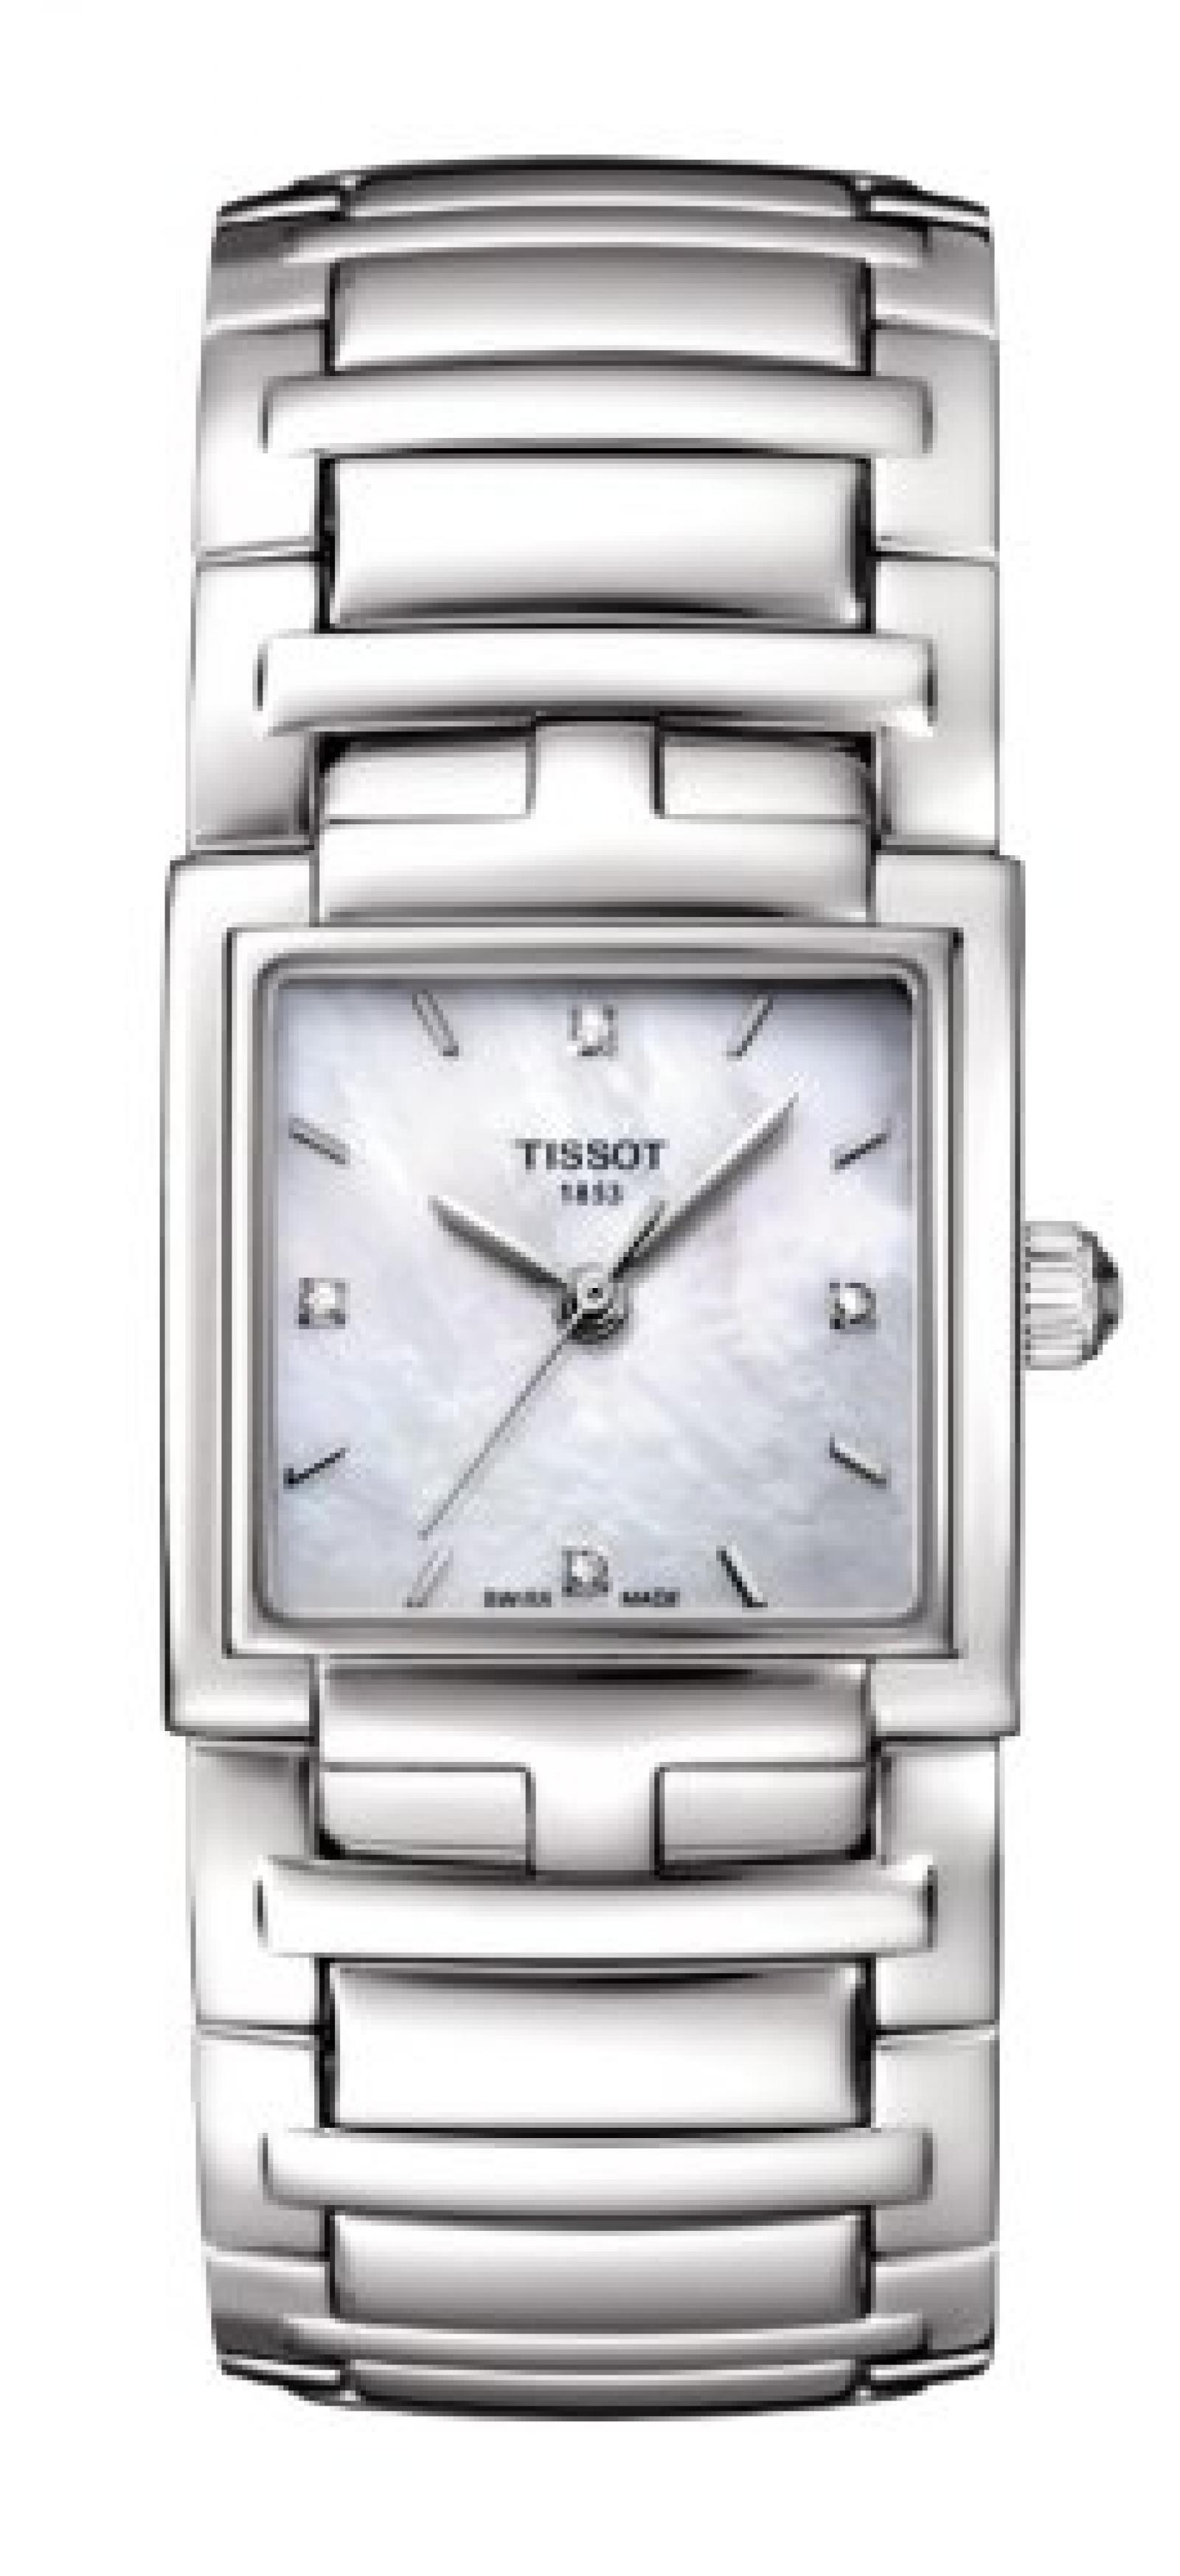 Tissot Damen-Uhren Quarz Analog T0513101111600